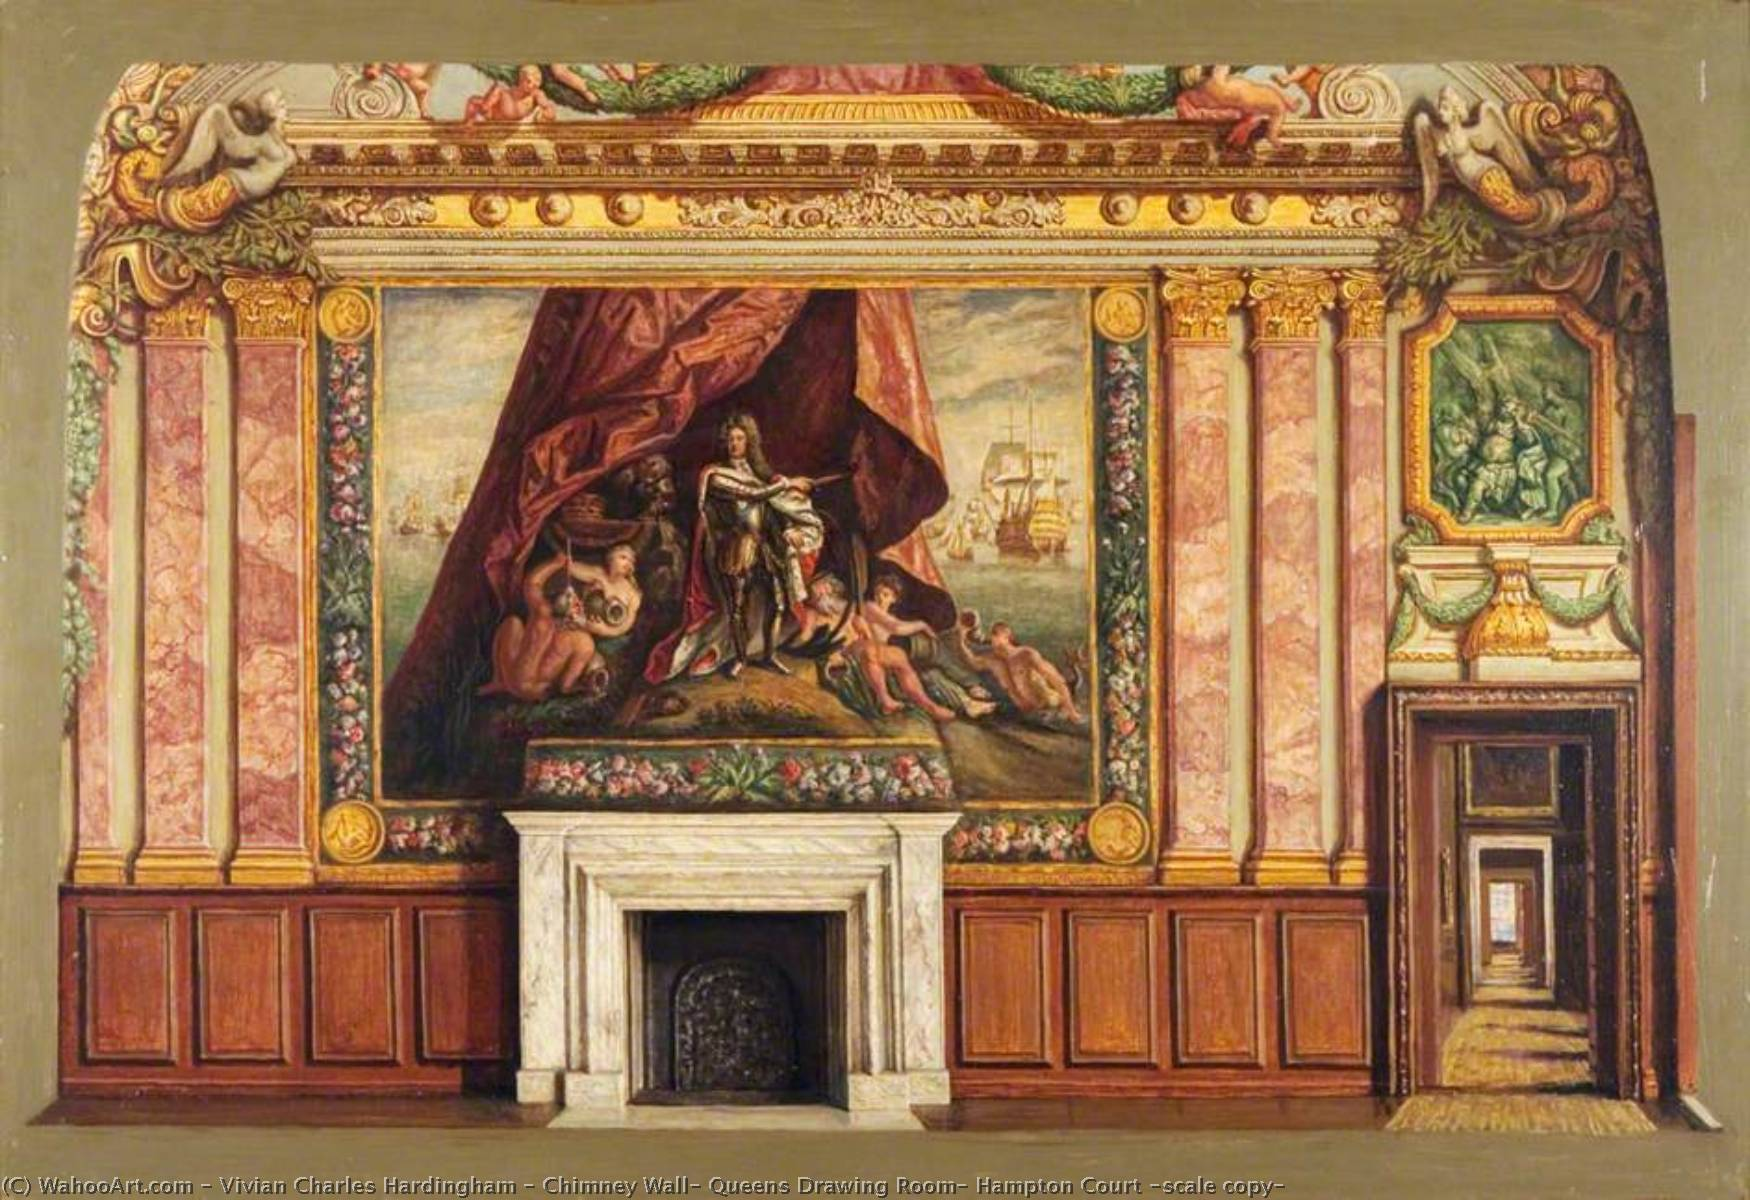 Chimney Wall, Queens Drawing Room, Hampton Court (scale copy), Oil by Vivian Charles Hardingham